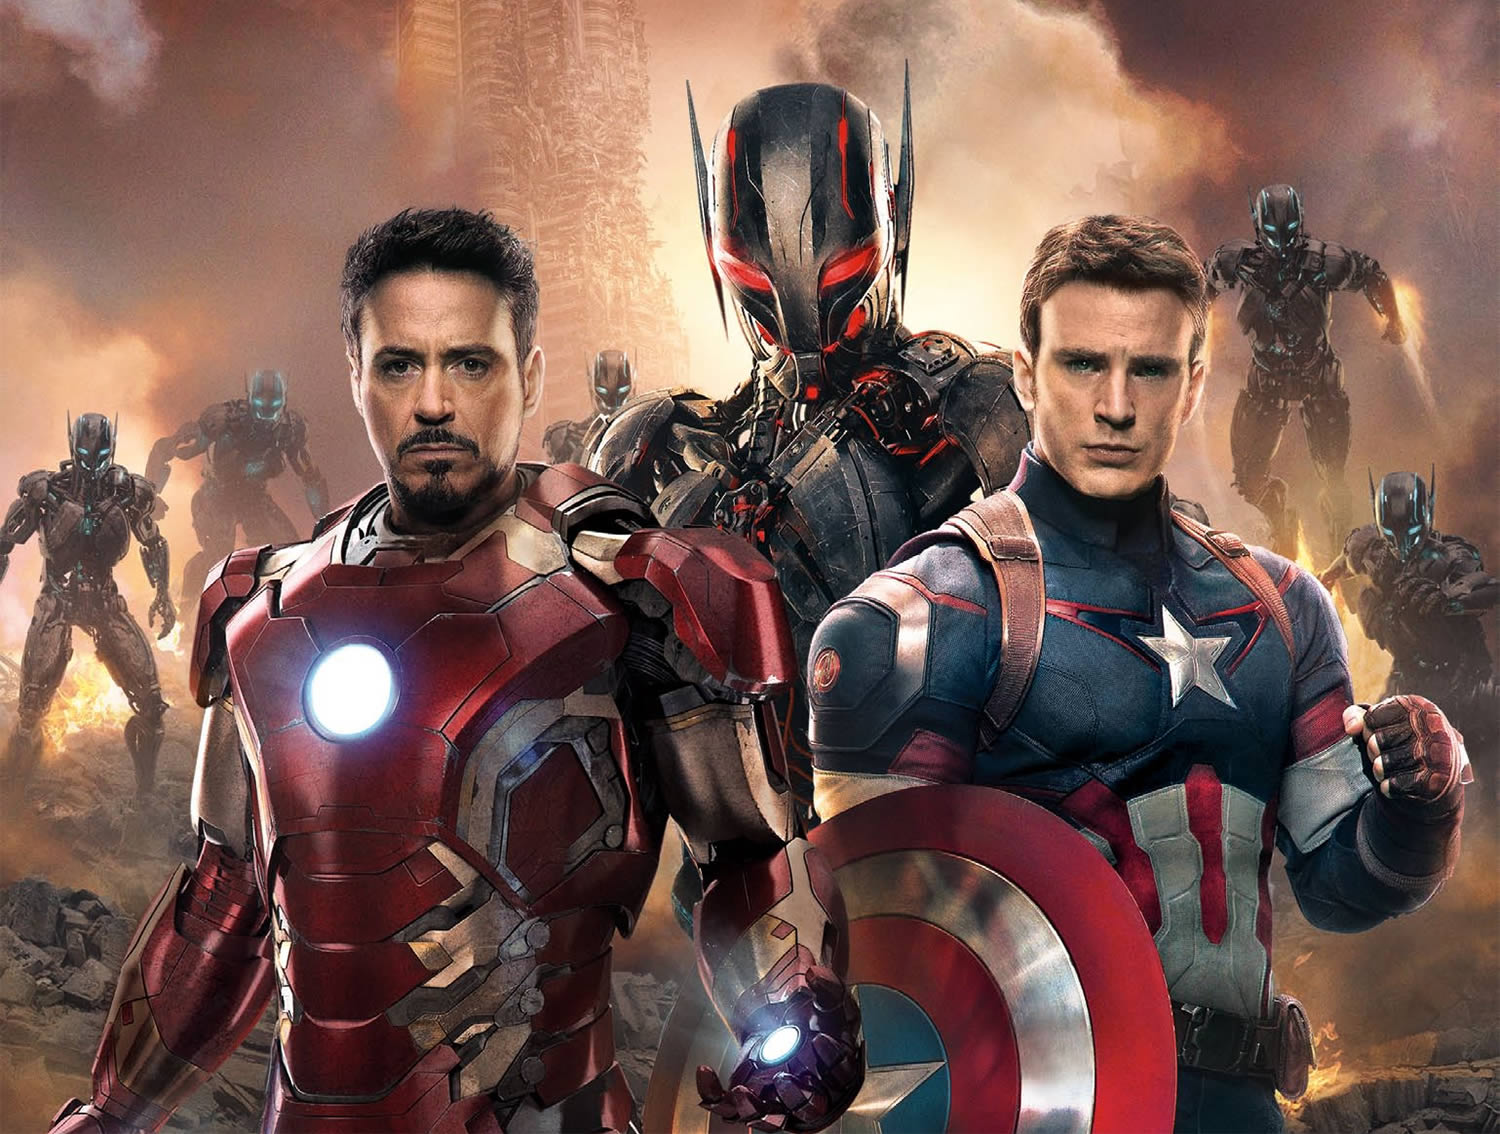 iron man and captain america in Avengers: Age of Ultron movie 2015